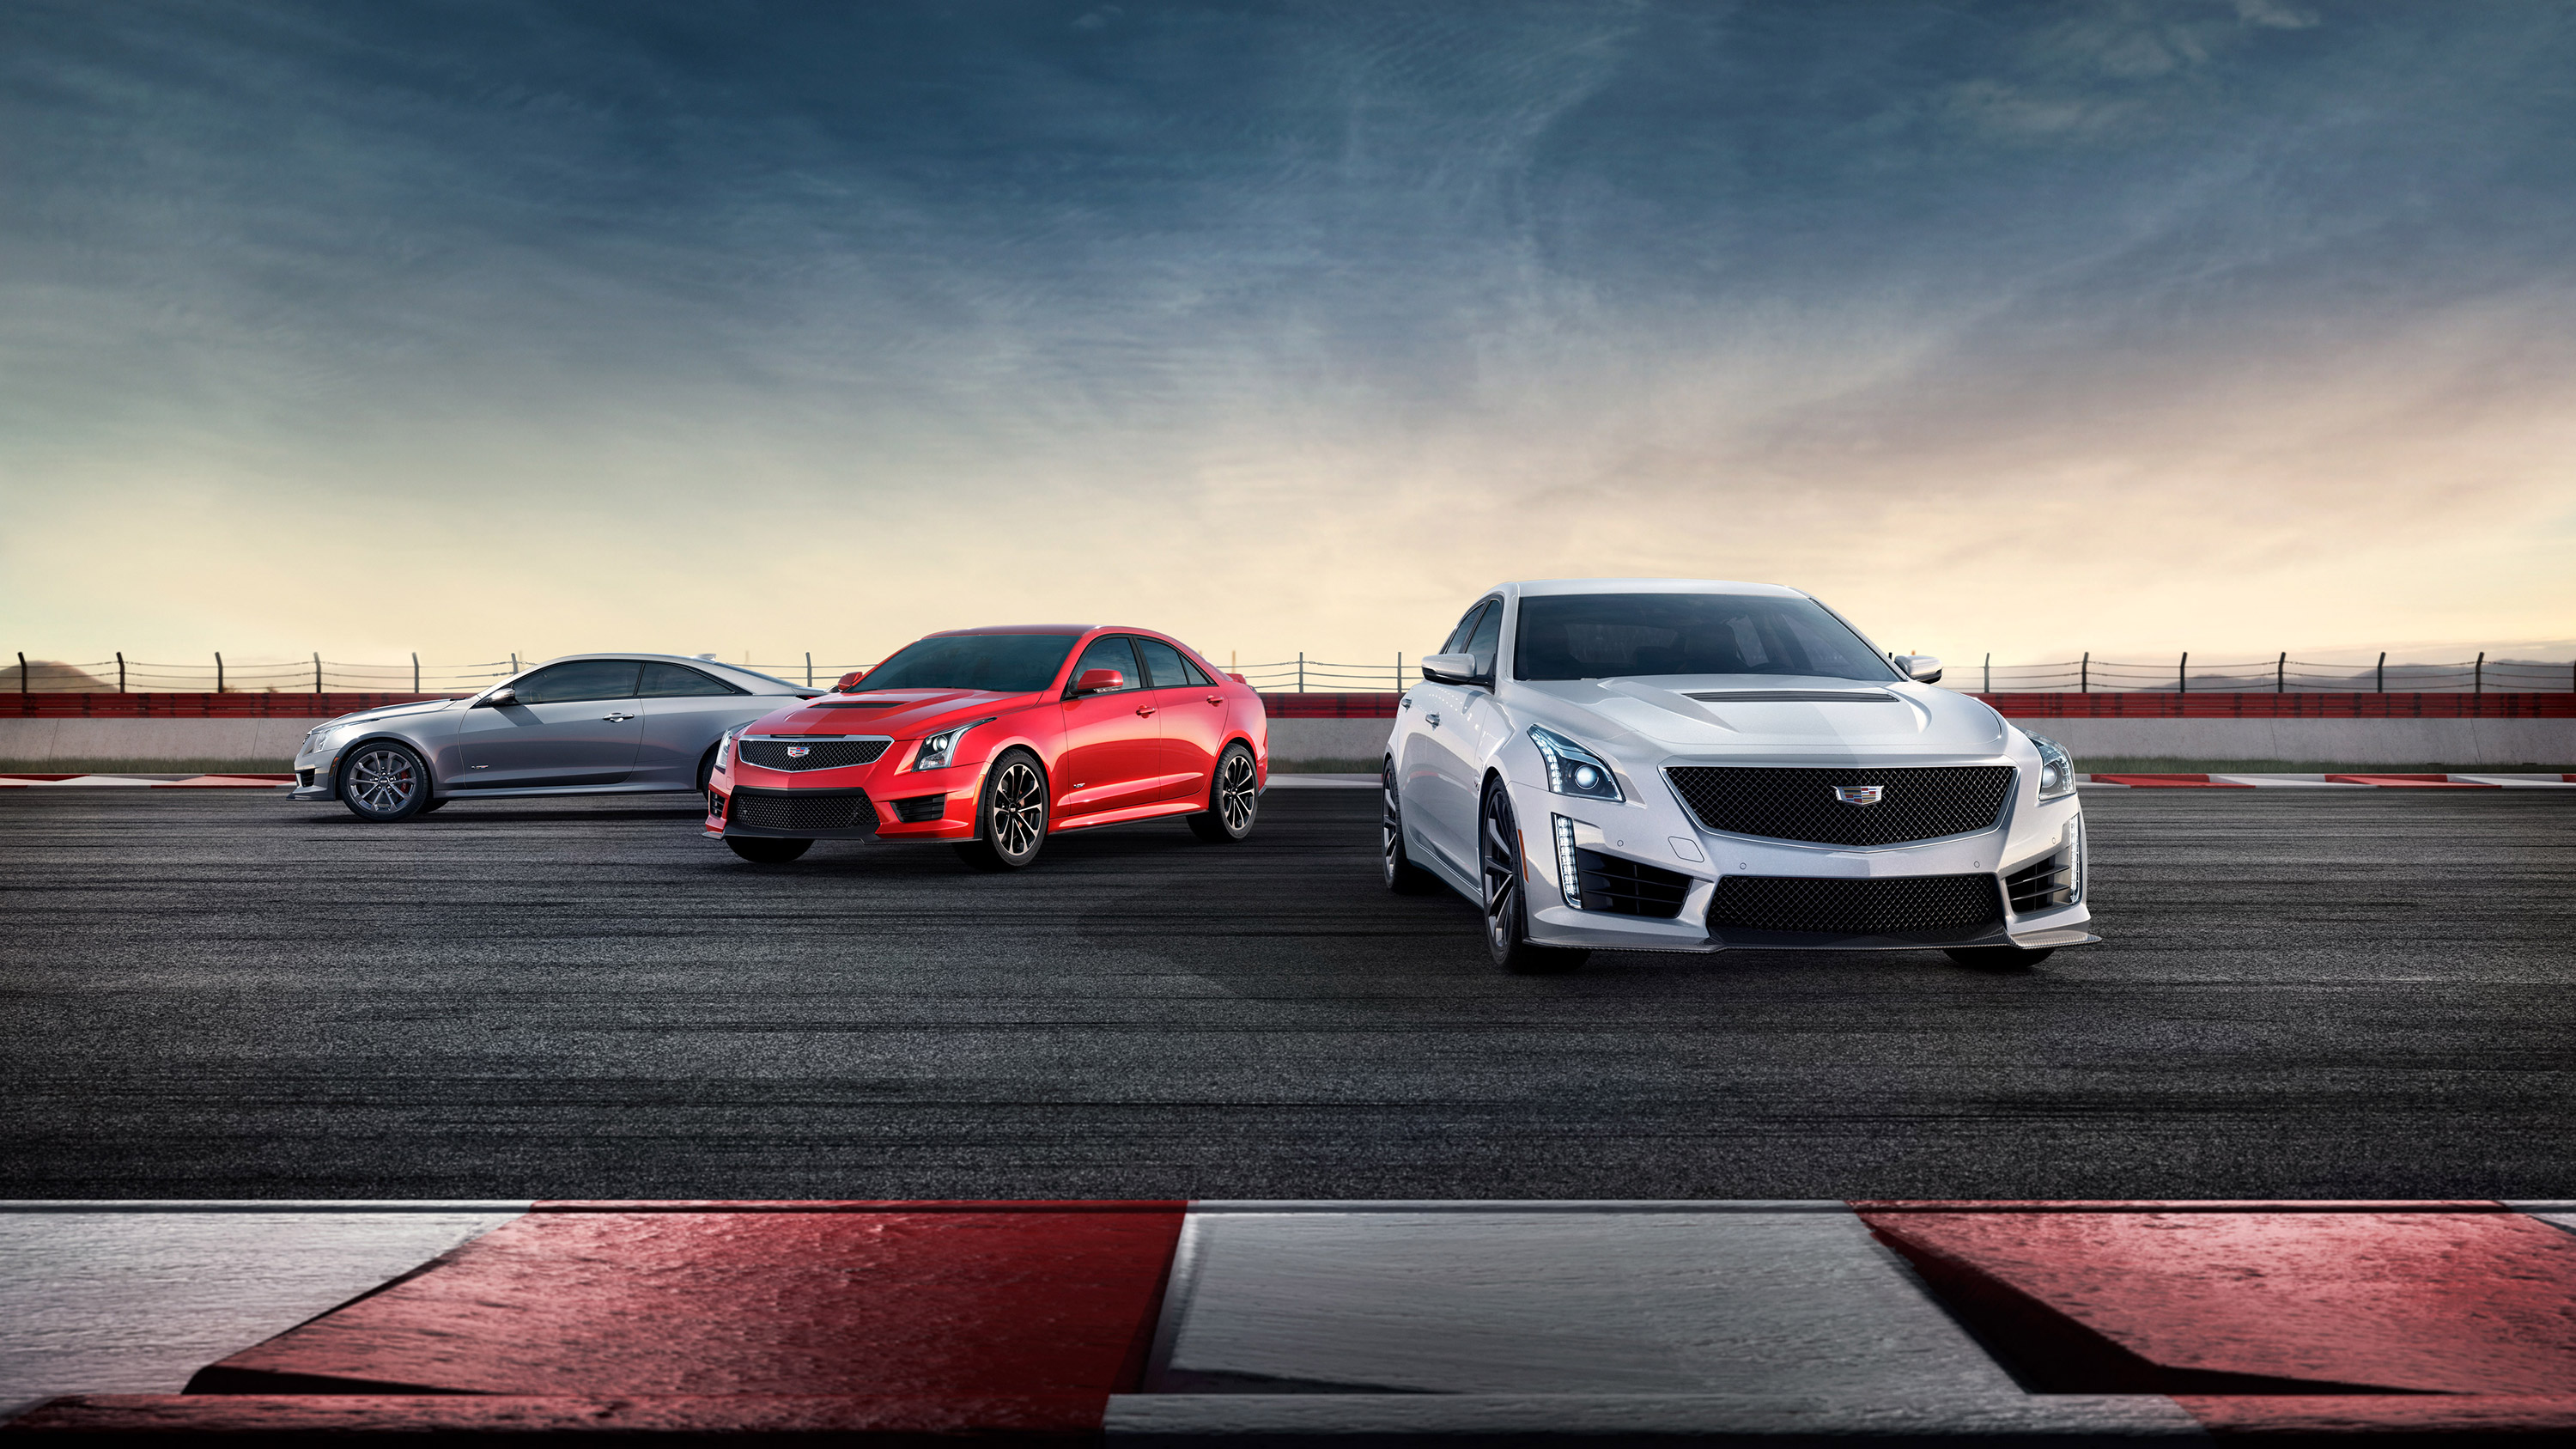 2019 Cadillac Ats V Coupe Gets A 4 000 Price Increase The News Wheel